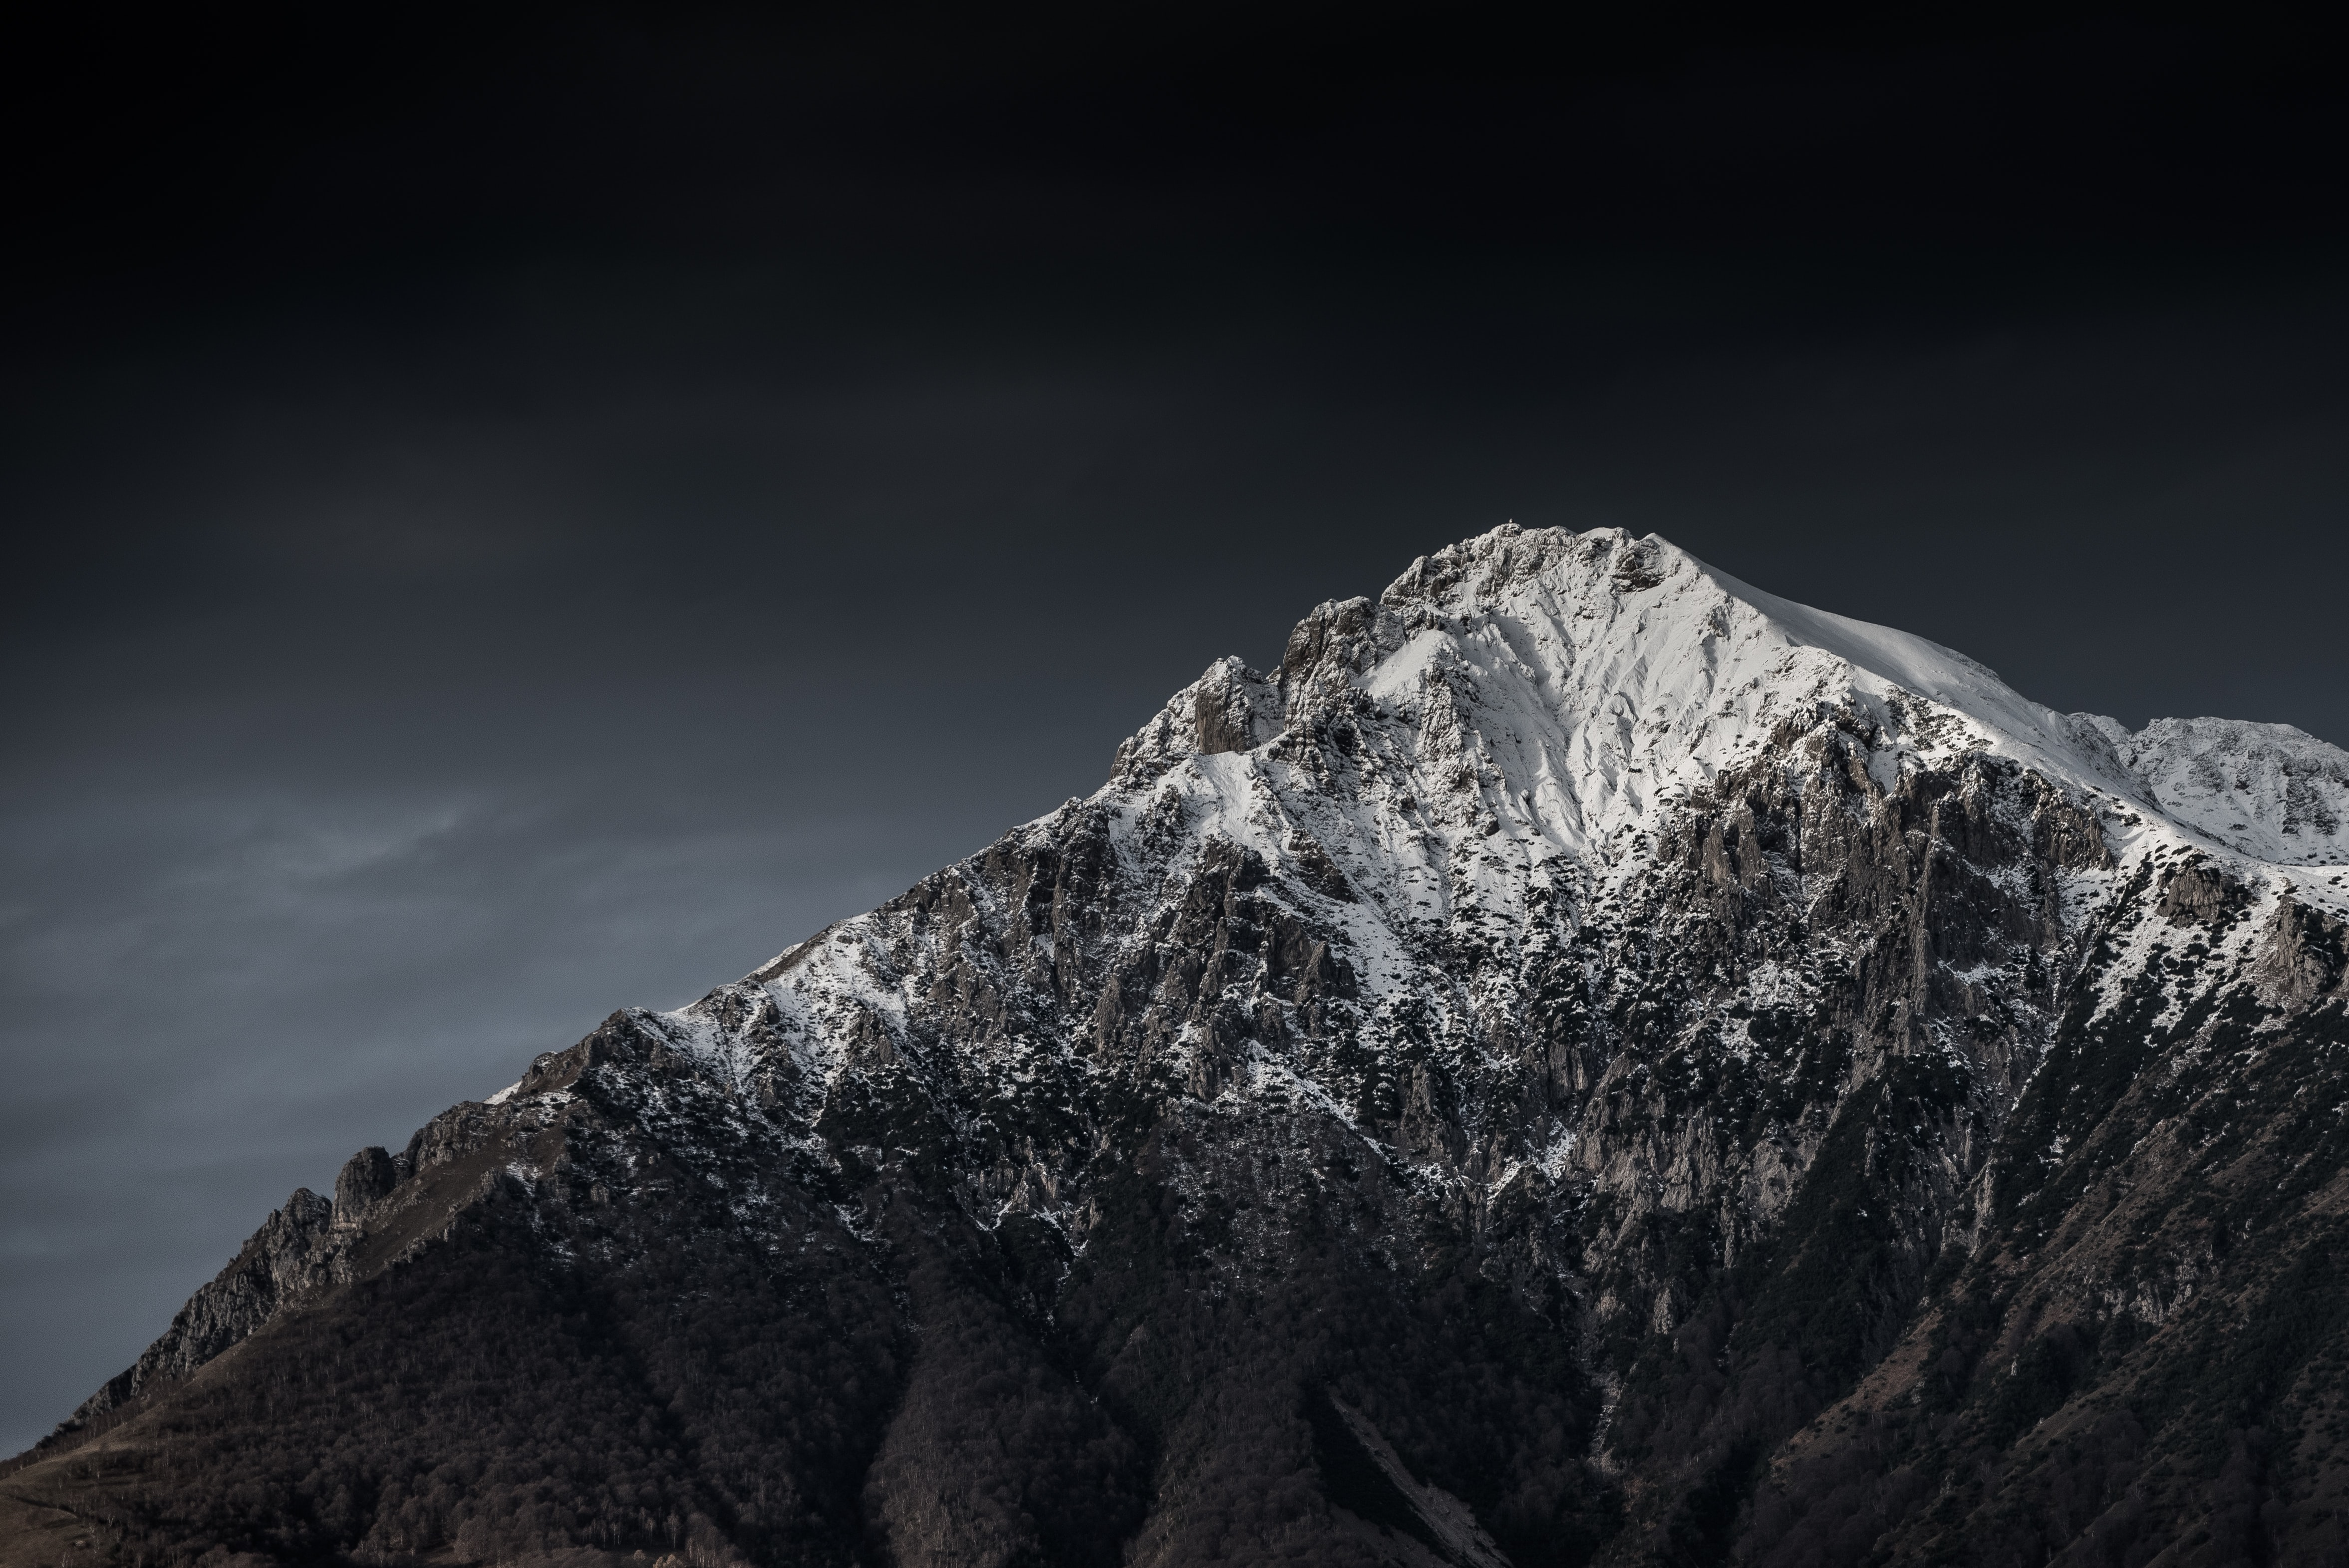 snow-covered mountain summit